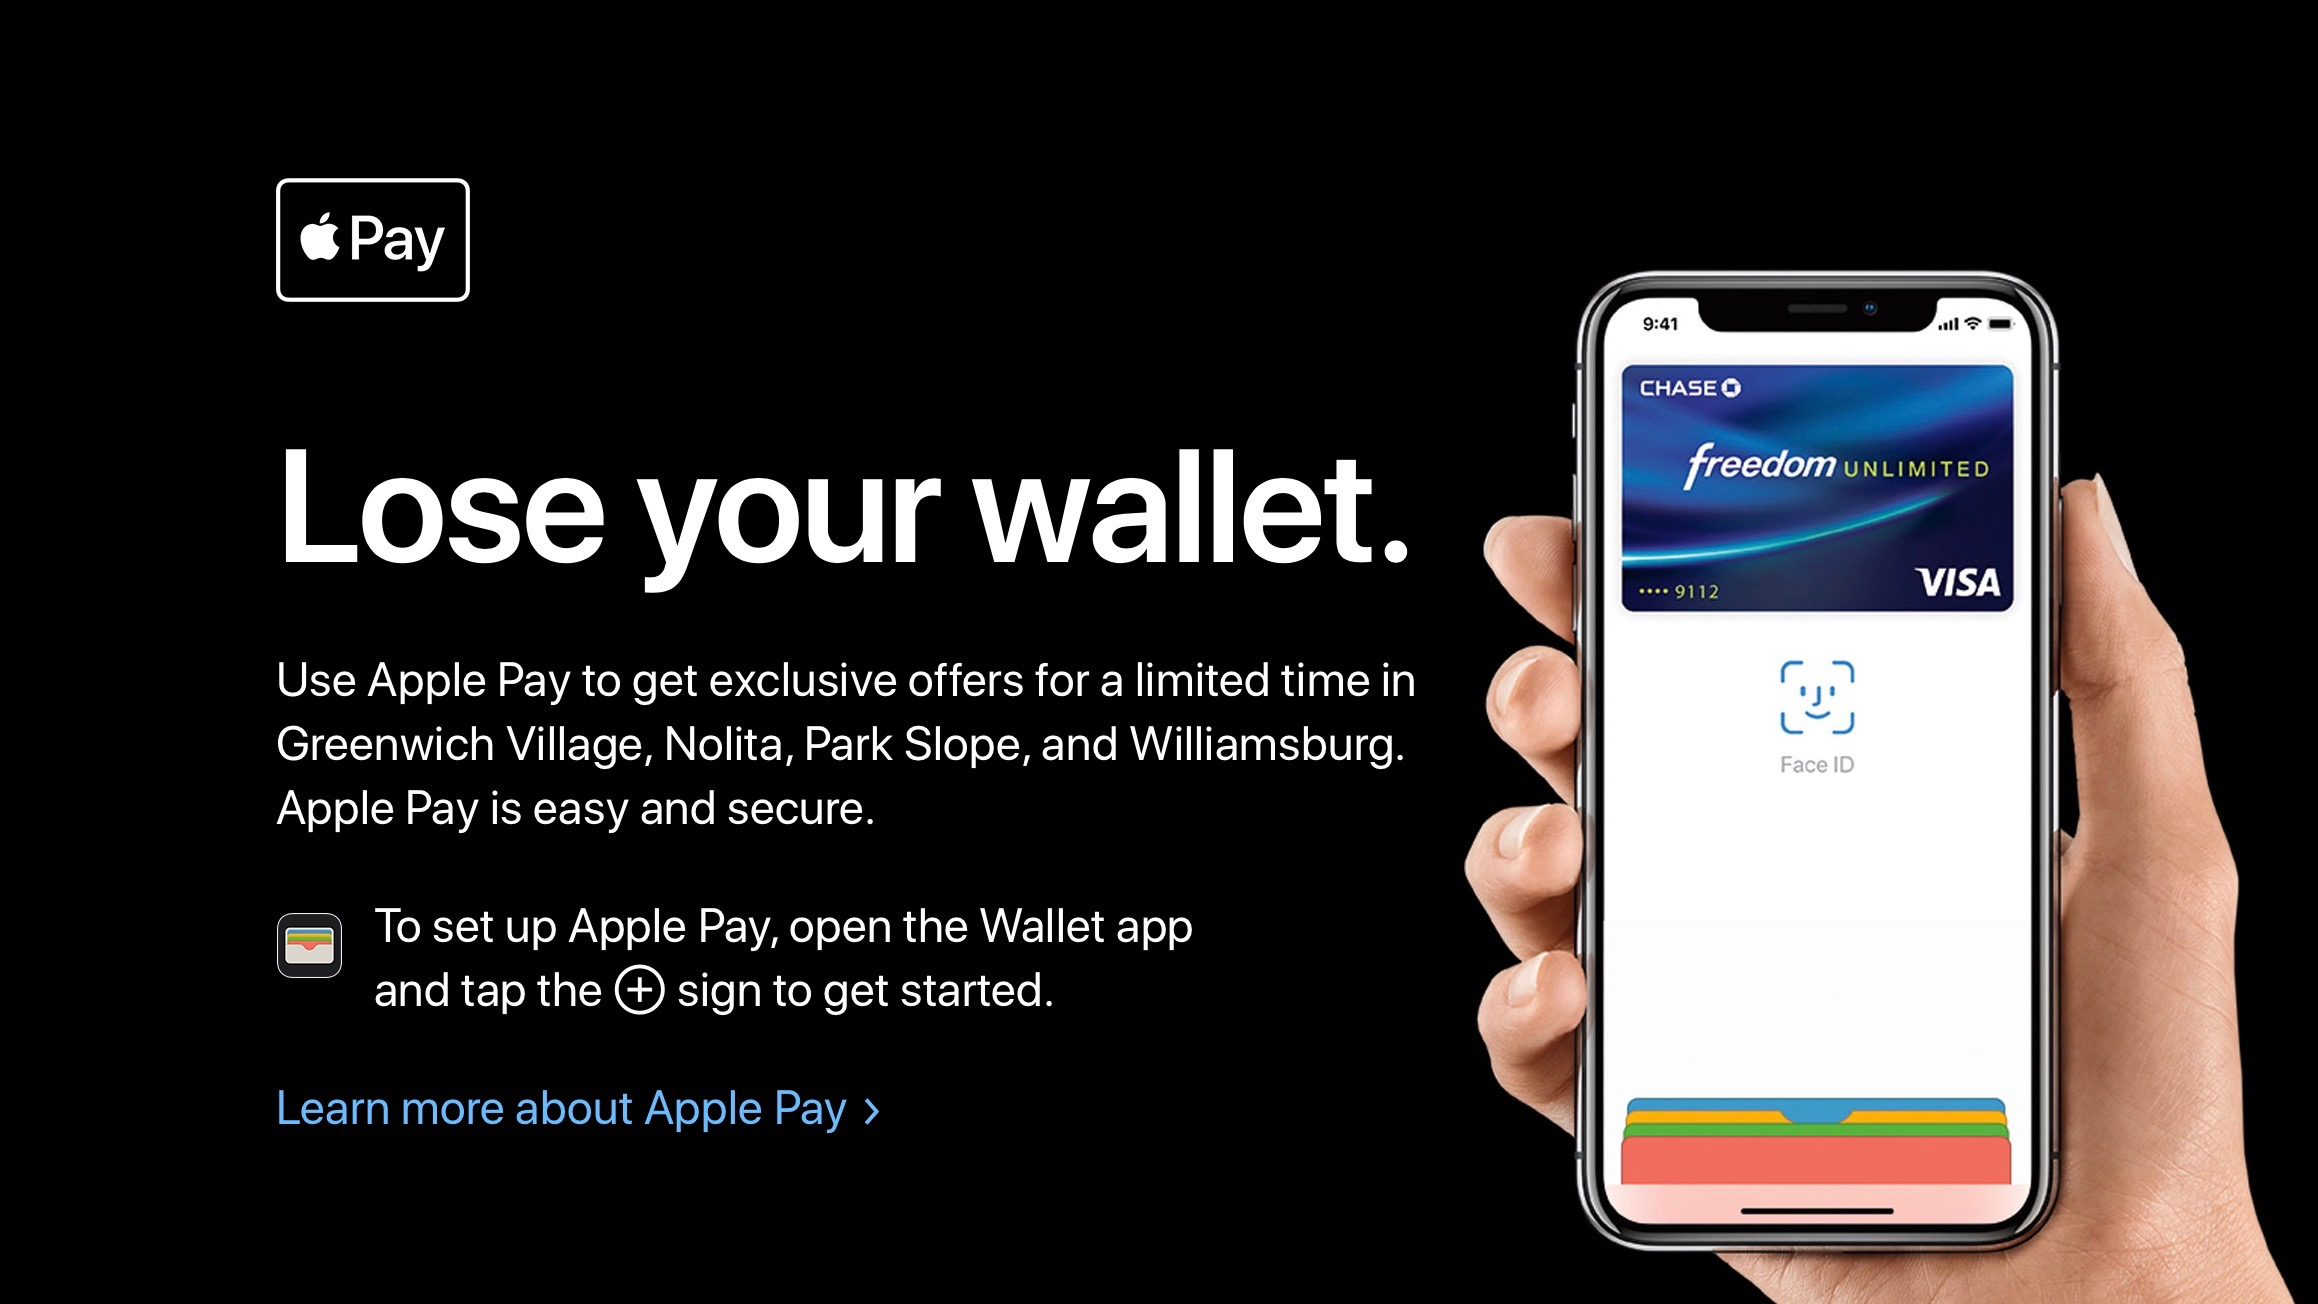 Apple holding 'Lose your wallet' Apple Pay shopping event w/ exclusive discounts in New York City